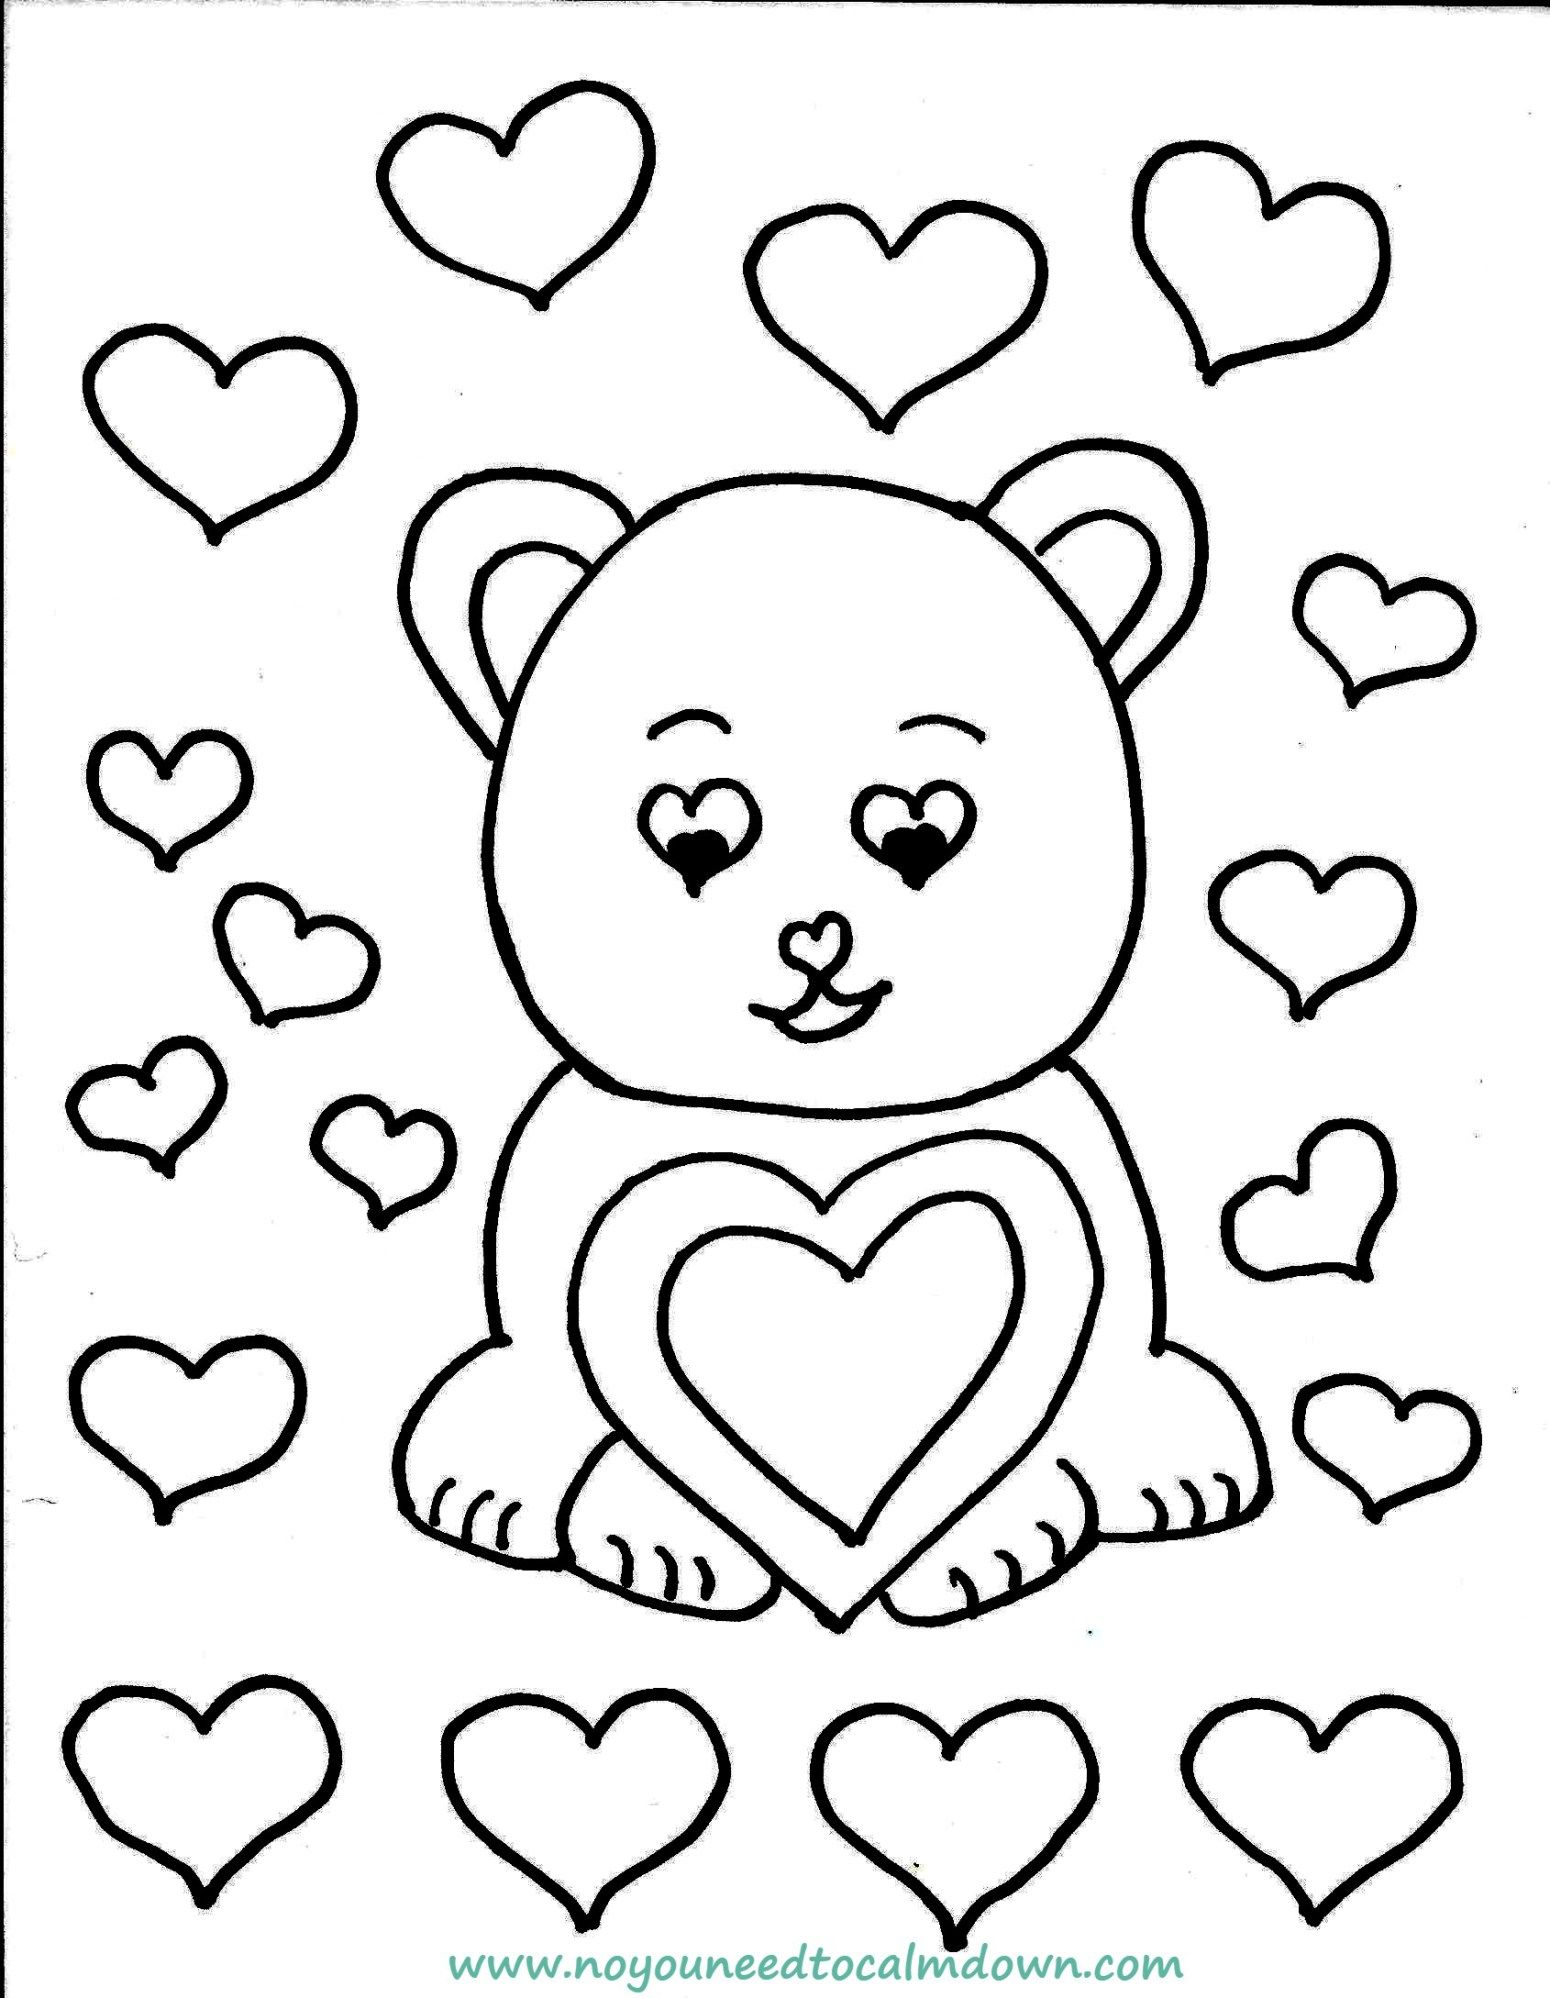 Cute bear valentines day coloring page free printable kids